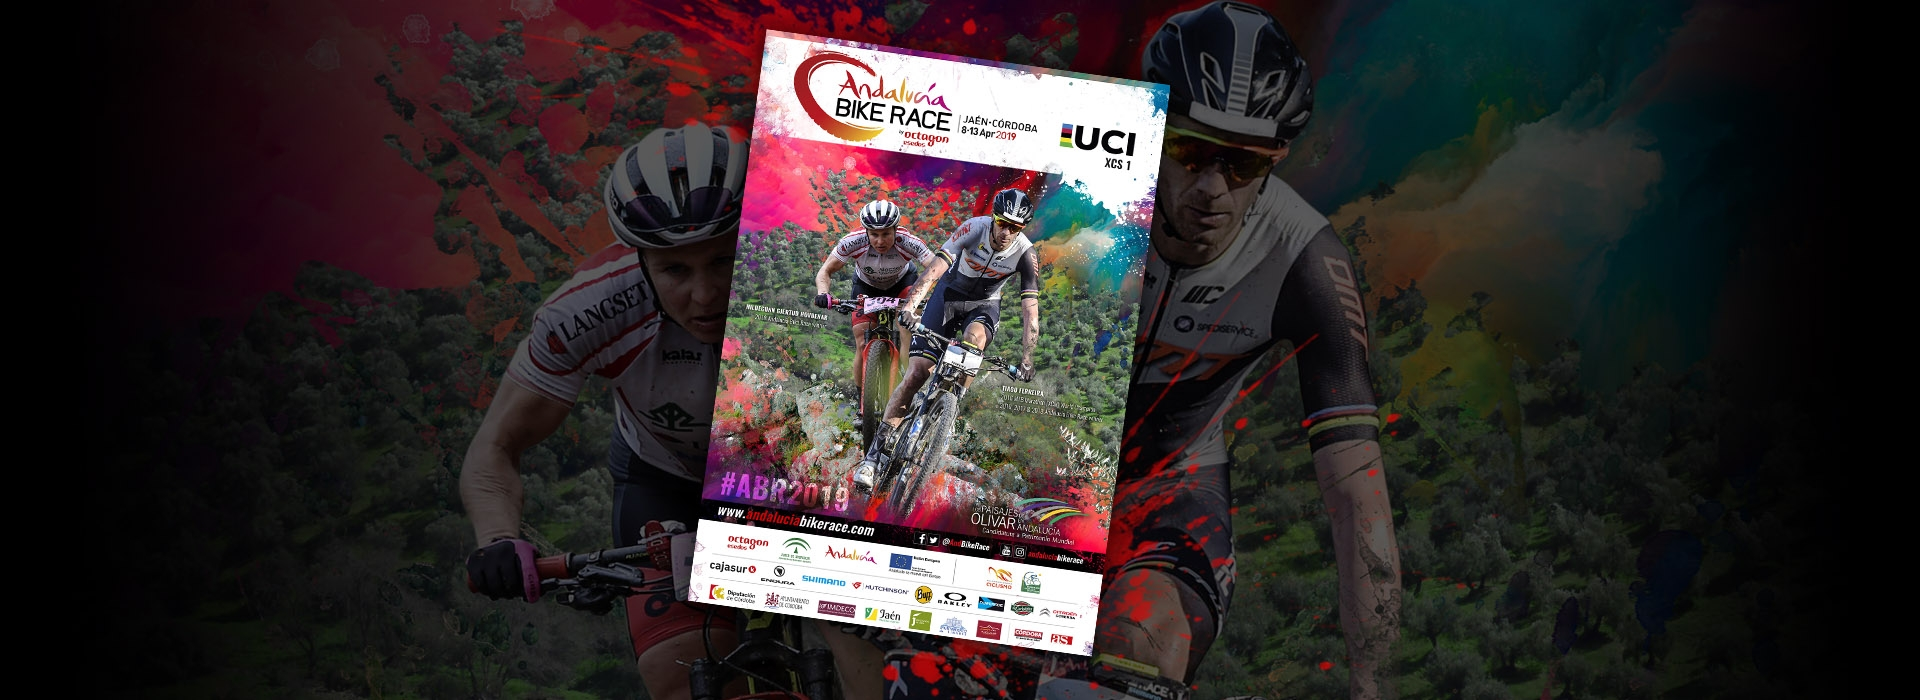 Official poster of Andalucía Bike Race 2019!